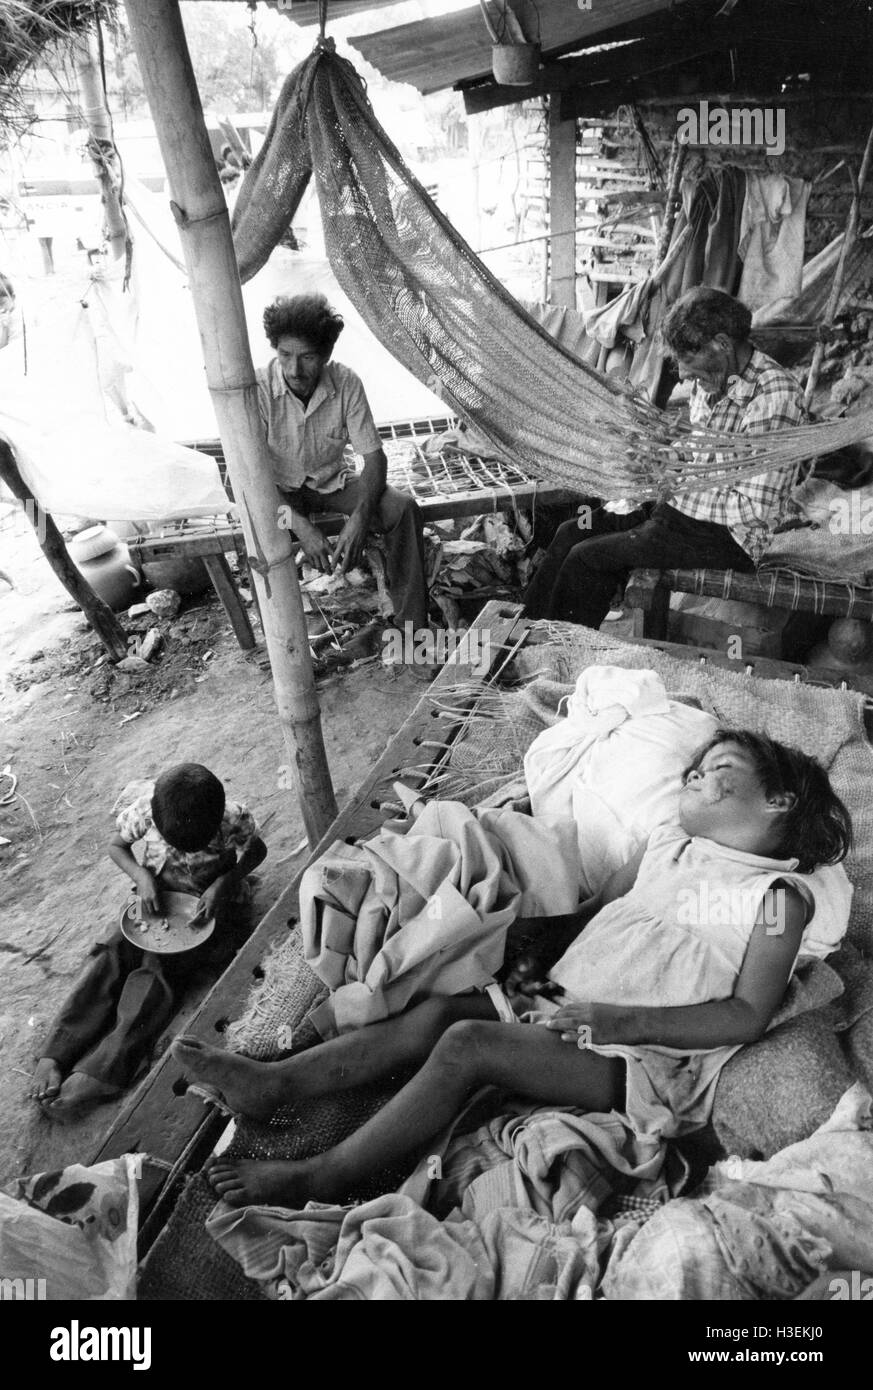 SAN VINCENTE, EL SALVADOR, March 1982:  a  child sleeps and adults pass the time in a camp for displaced people - Stock Image